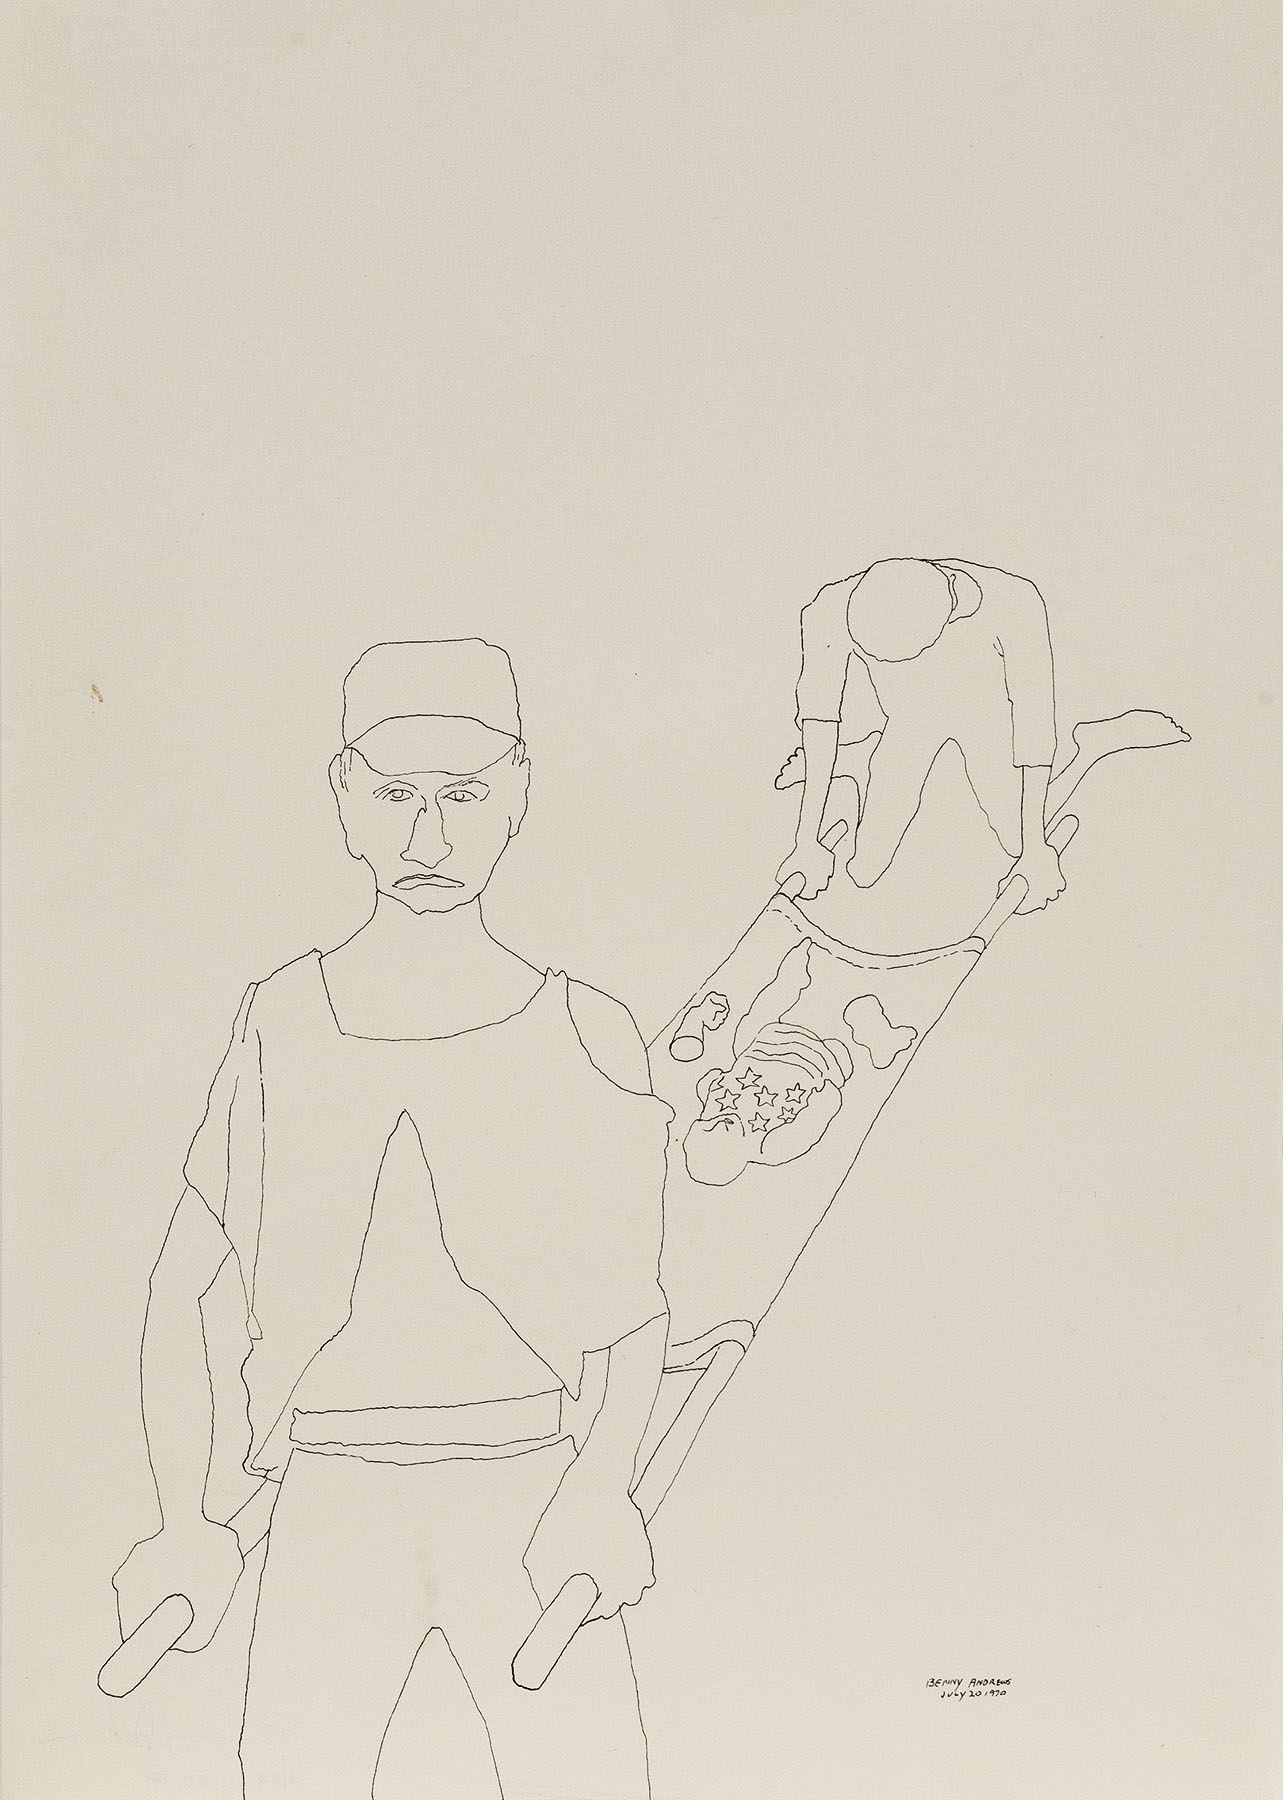 """Cargo (Study for Symbols), 1970, pen and ink on paper 17 x 12"""""""